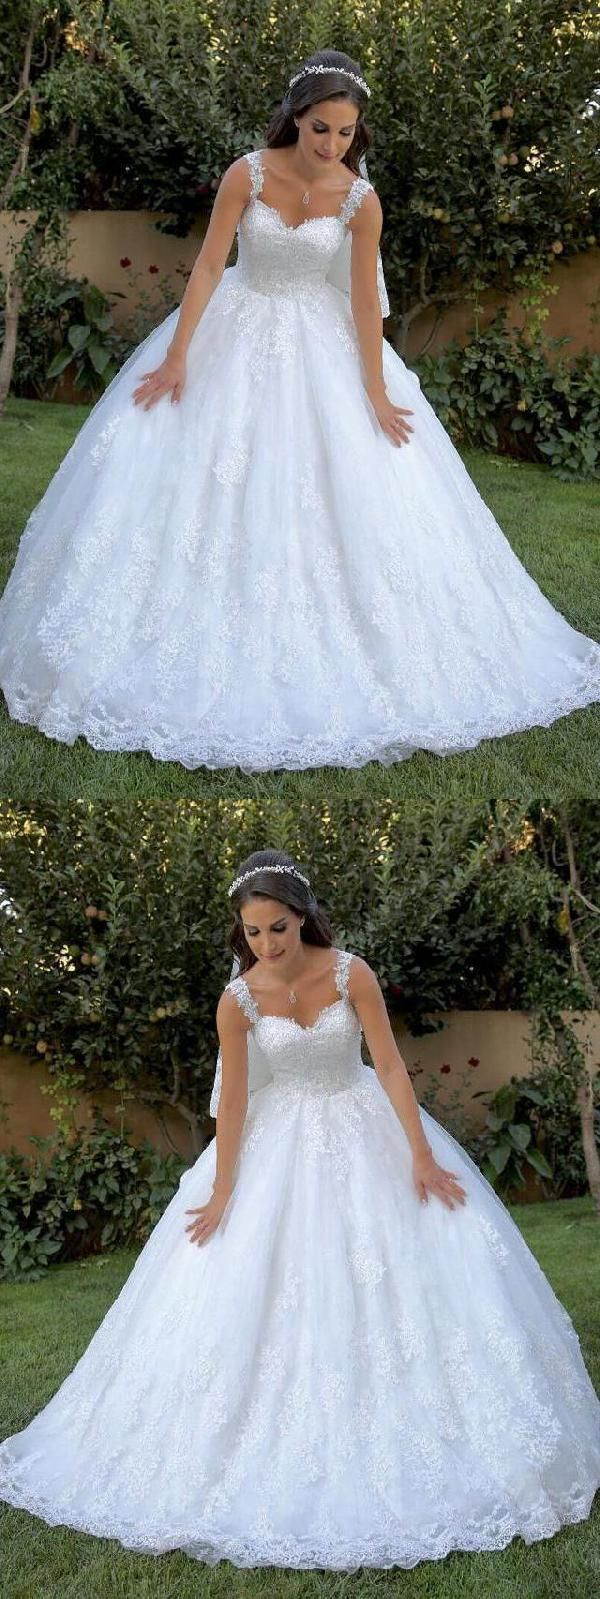 Outlet Glorious Wedding Dress White, Simple Wedding Dress, Wedding Dress Ball Gown, Lace Wedding Dress